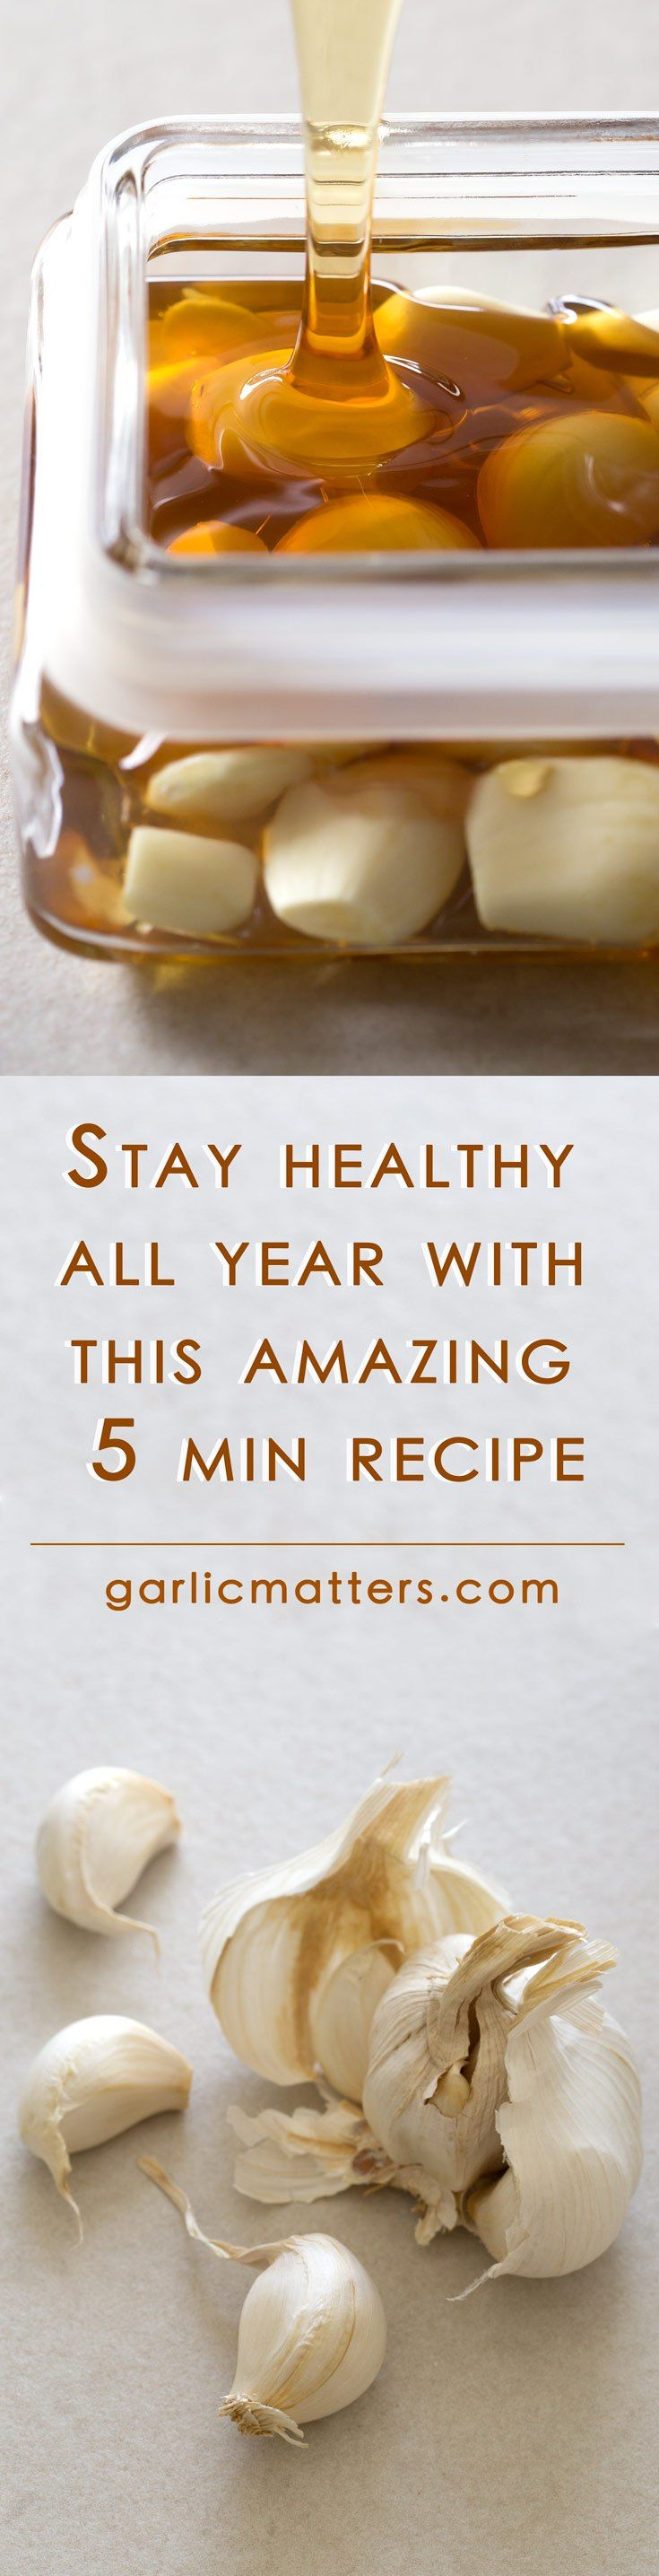 Try my simple immune system boosting honey infused garlic to stay clear of cold & flu all year. This recipe is also a powerful natural remedy for cough, sore throat, cold and flu symptoms. I always keep a jar of honey fermented garlic to snack on and use honey to sweeten cold drinks, tea, to use as a glaze for meat and vegetables or in salad dressings.